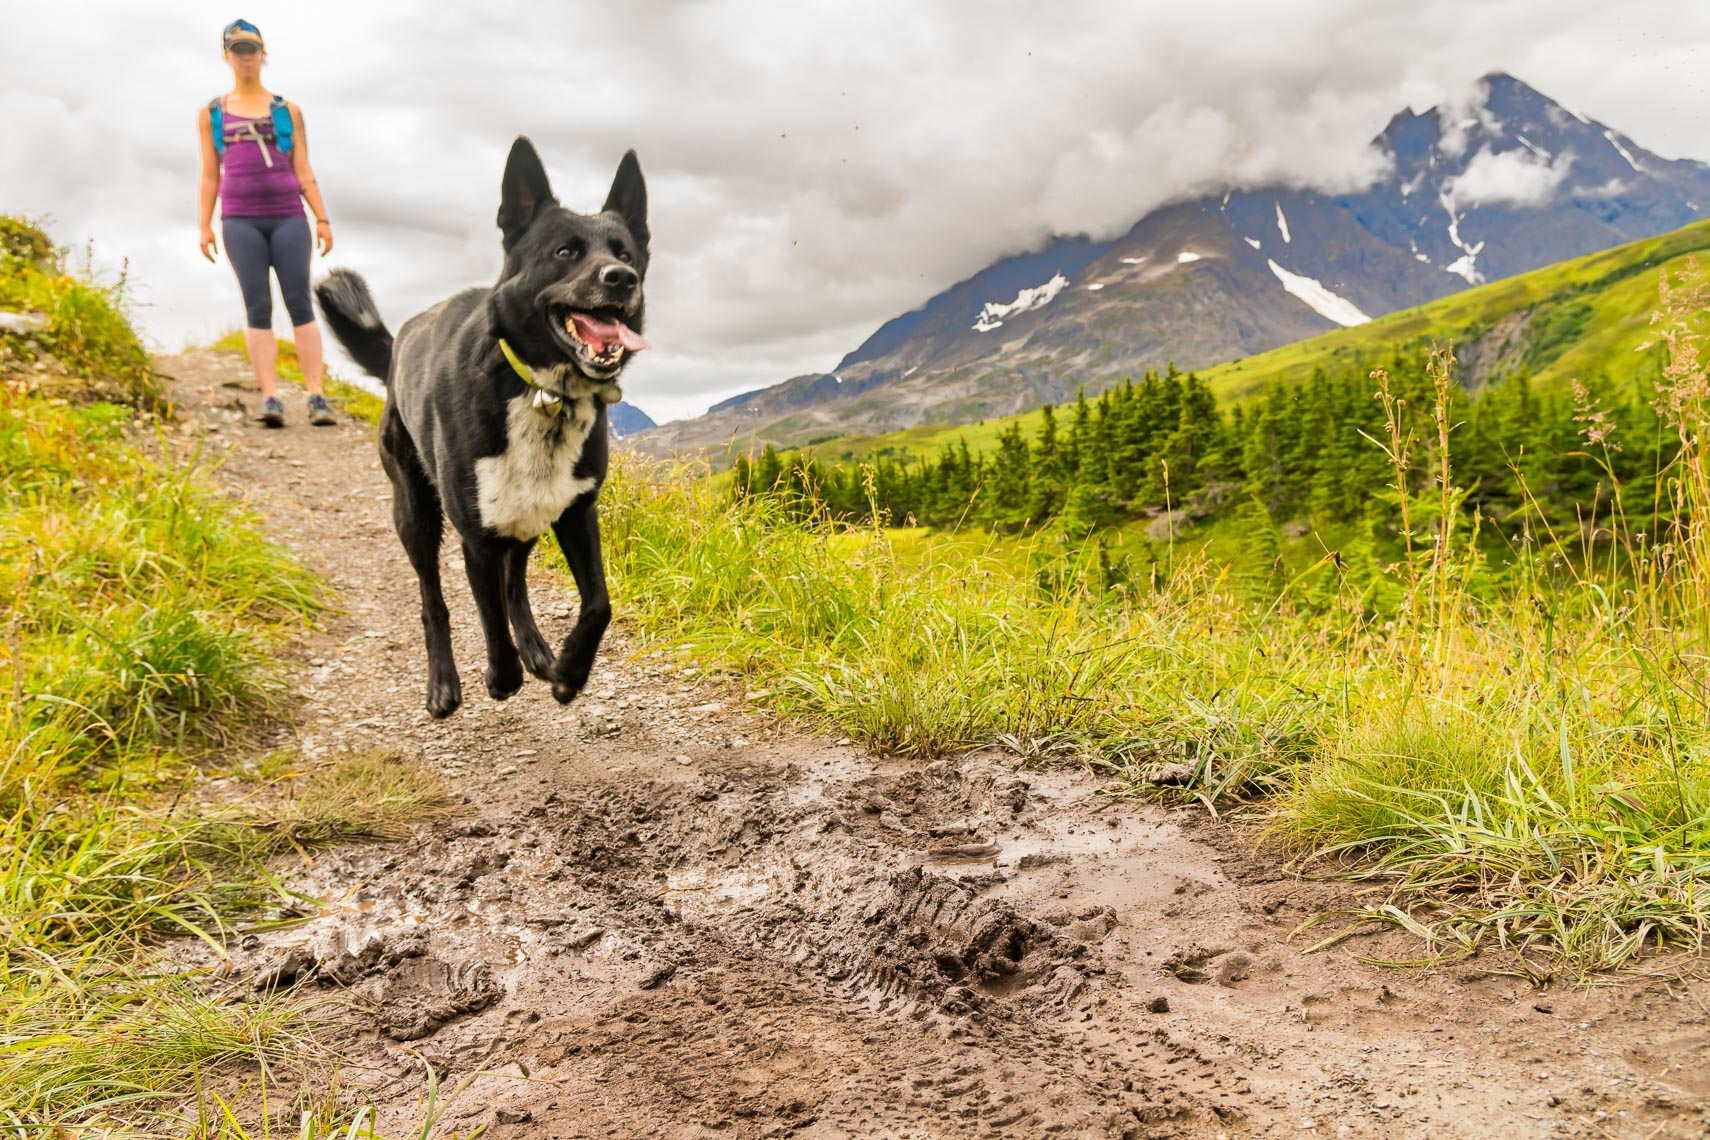 Alaska Seward Hiking Trail with Dog | Michael DeYoung